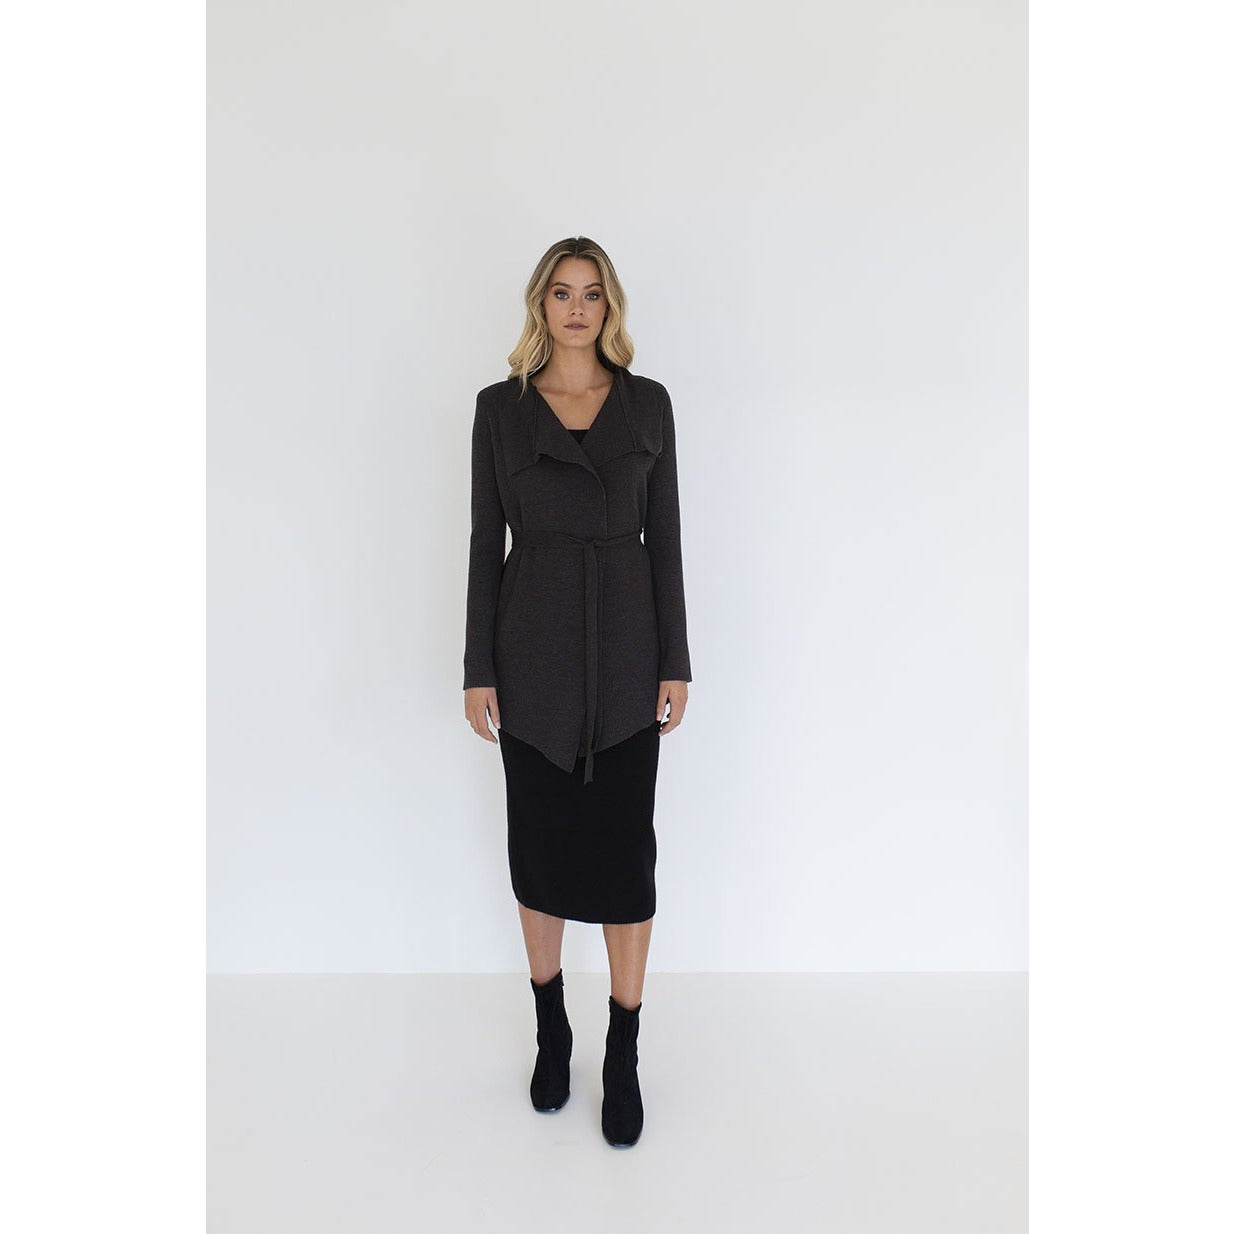 Humidity Alexis Knit Jacket in Black